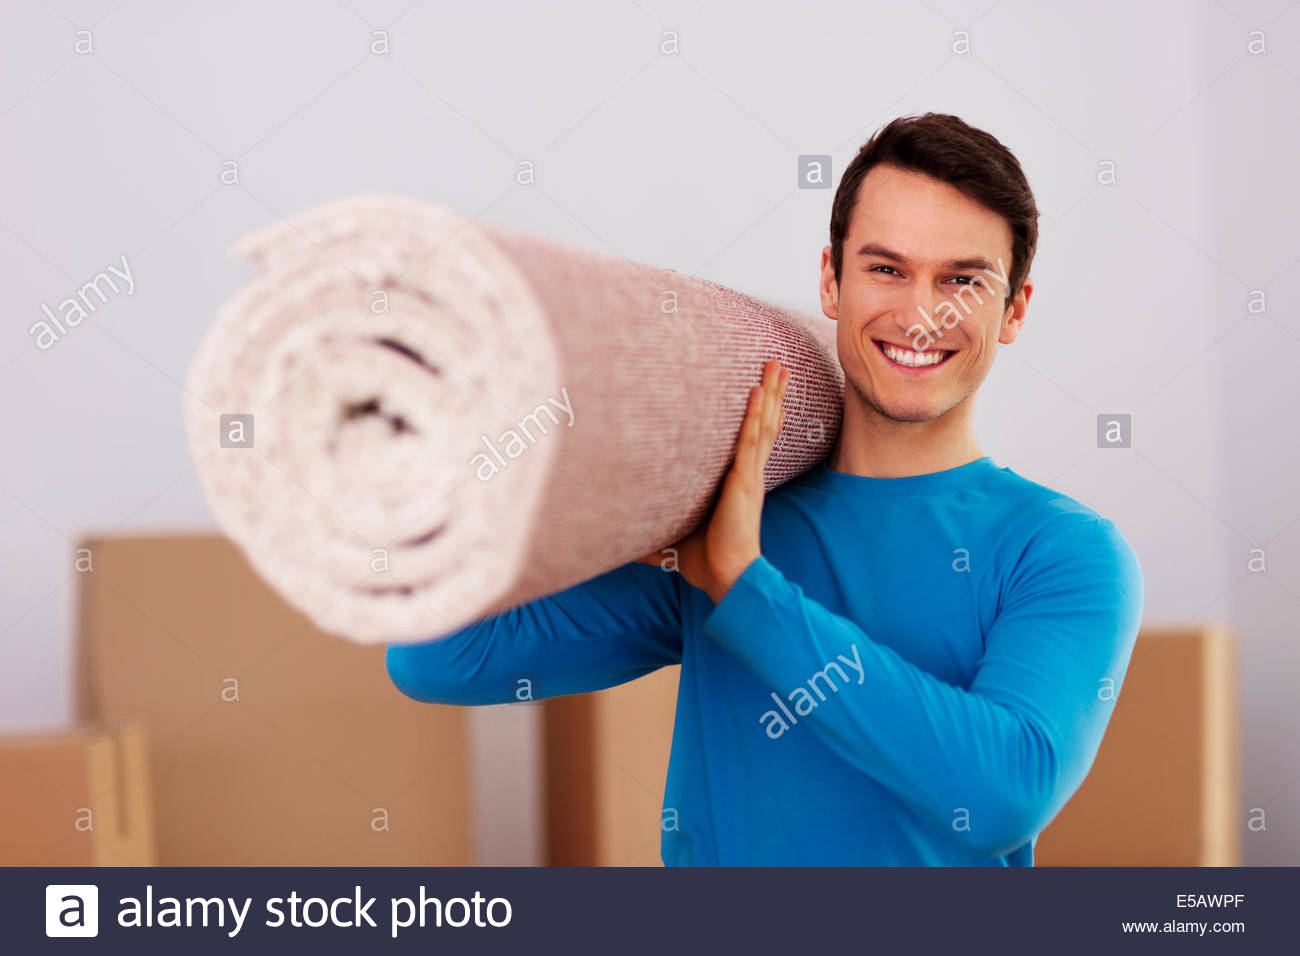 Roll Of Carpet Stock Photos Roll Of Carpet Stock Images   Alamy 1300x956